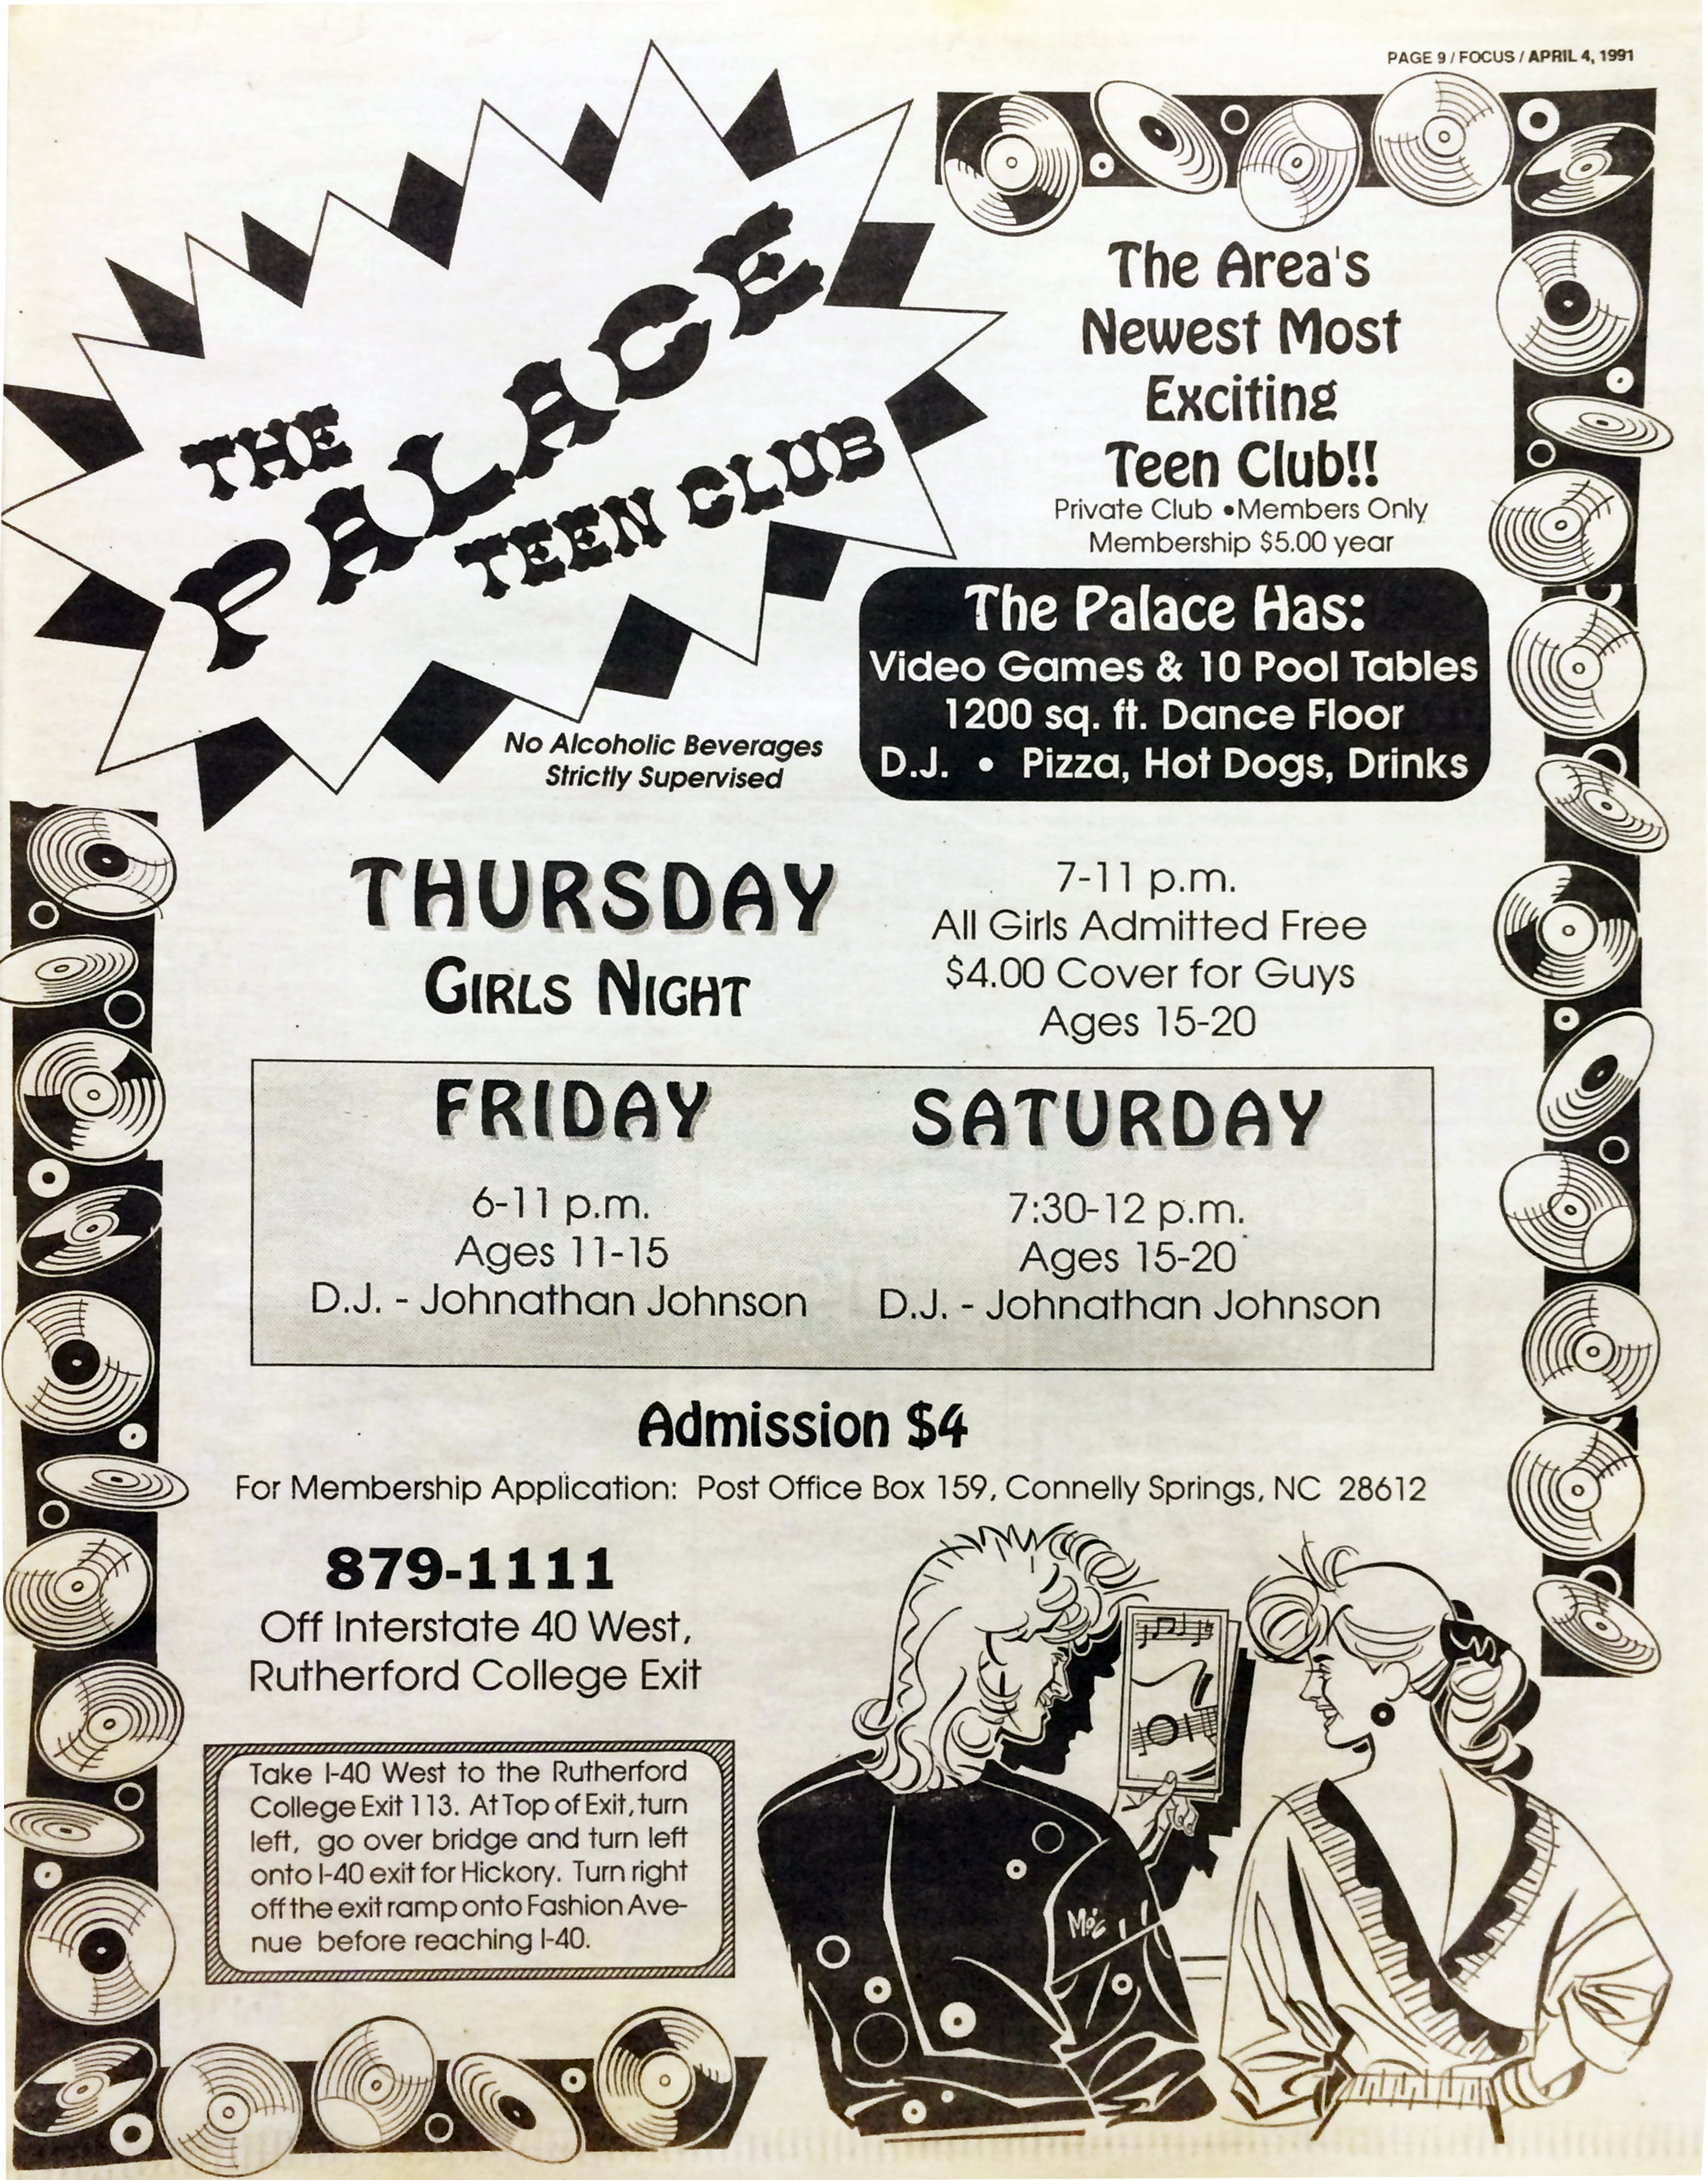 Advertisement for The Palace published April 4, 1991.